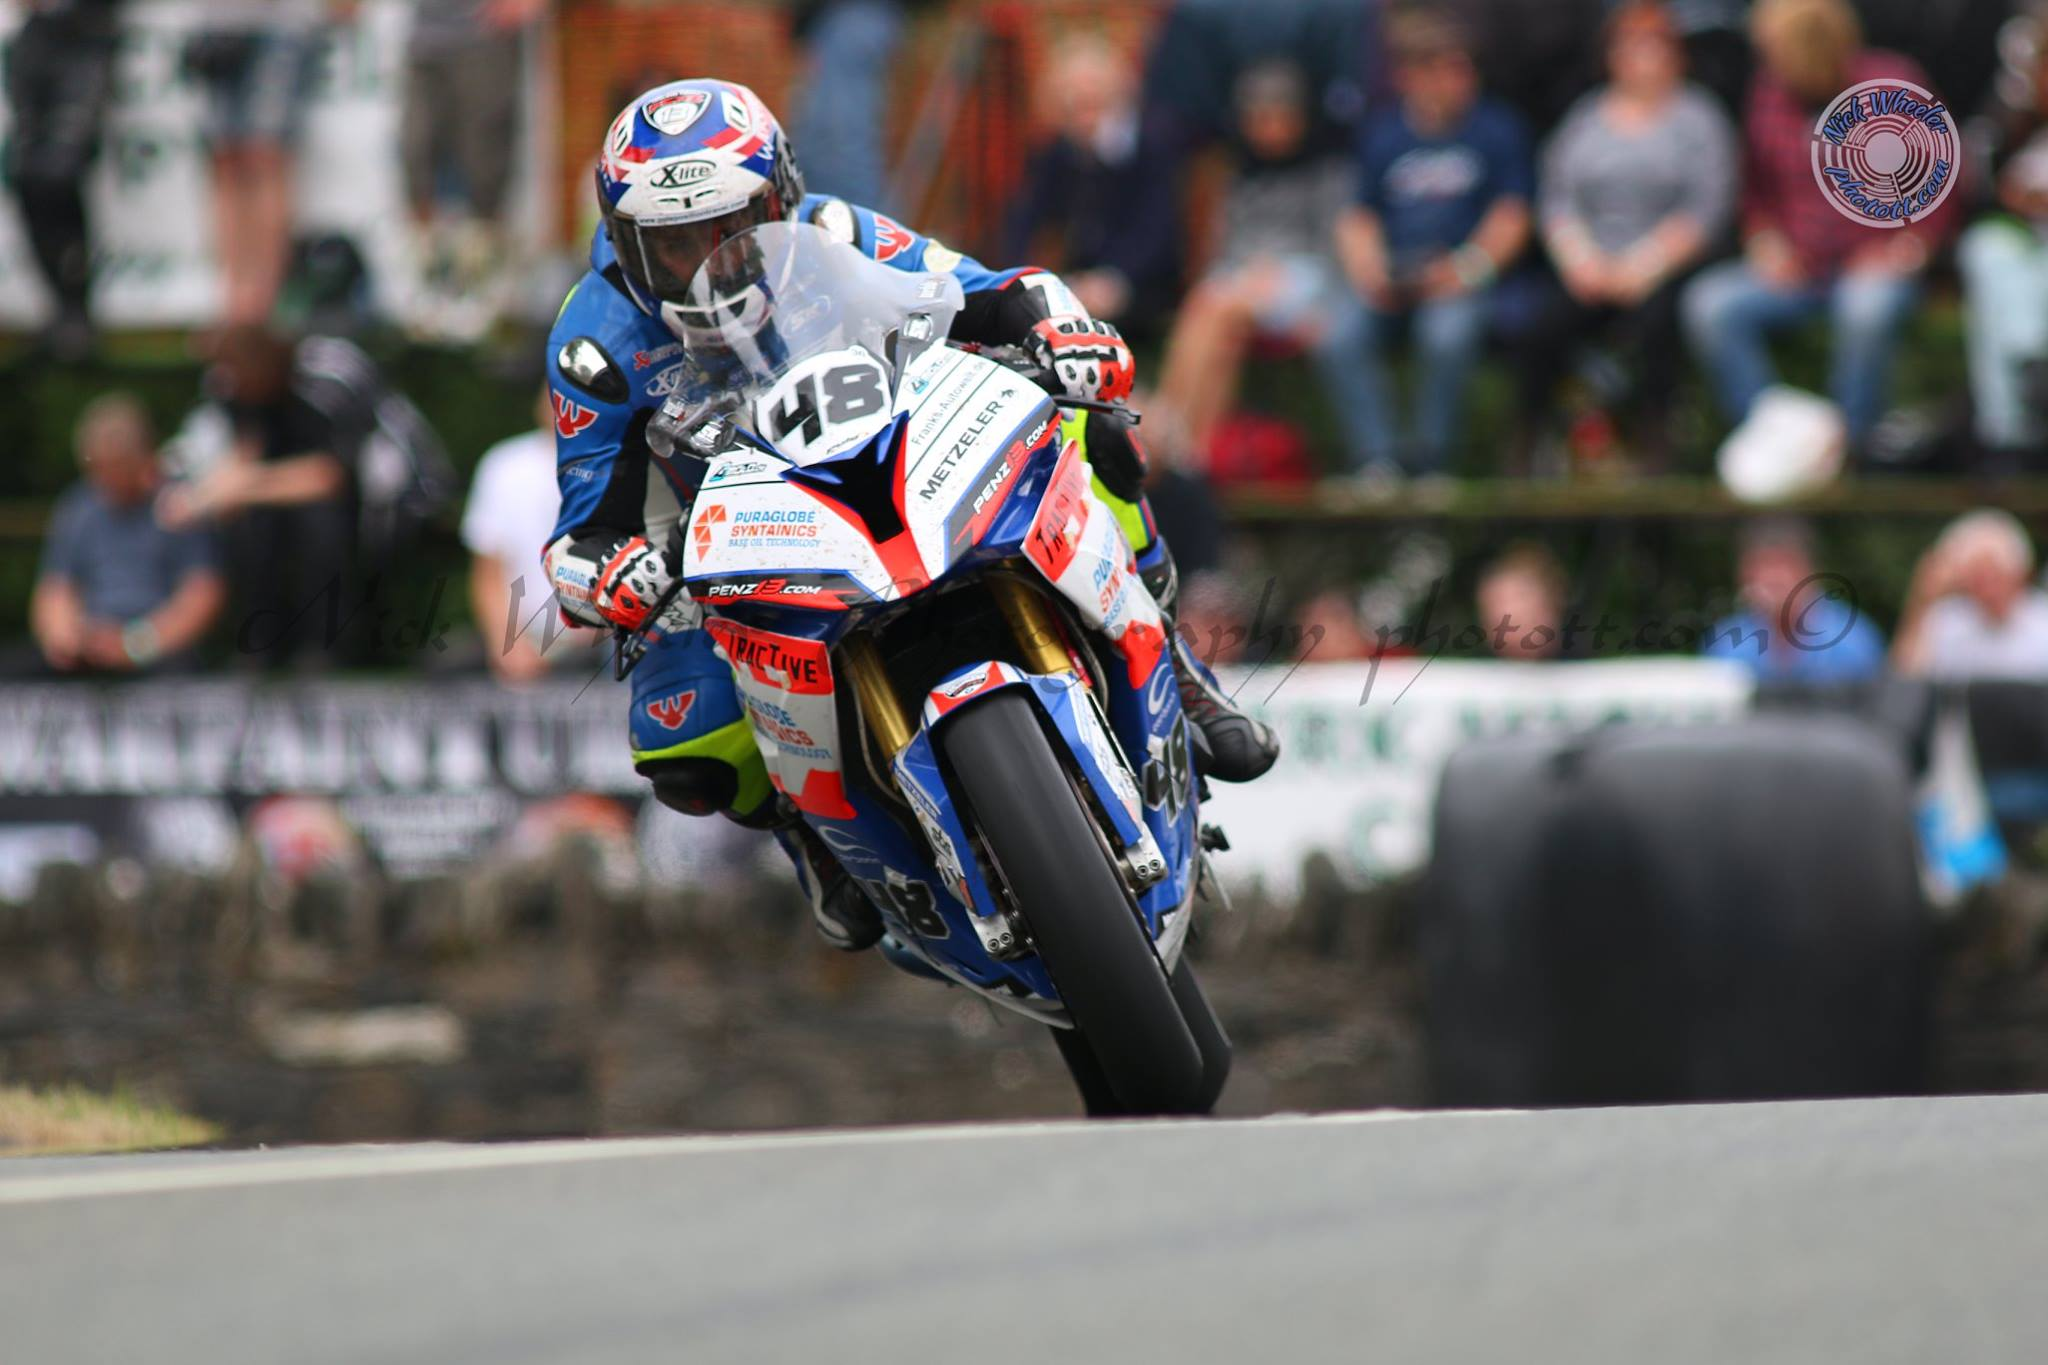 Dunnell Racing/IRRC Superbike Championship Leader Webb Confirmed For Classic TT